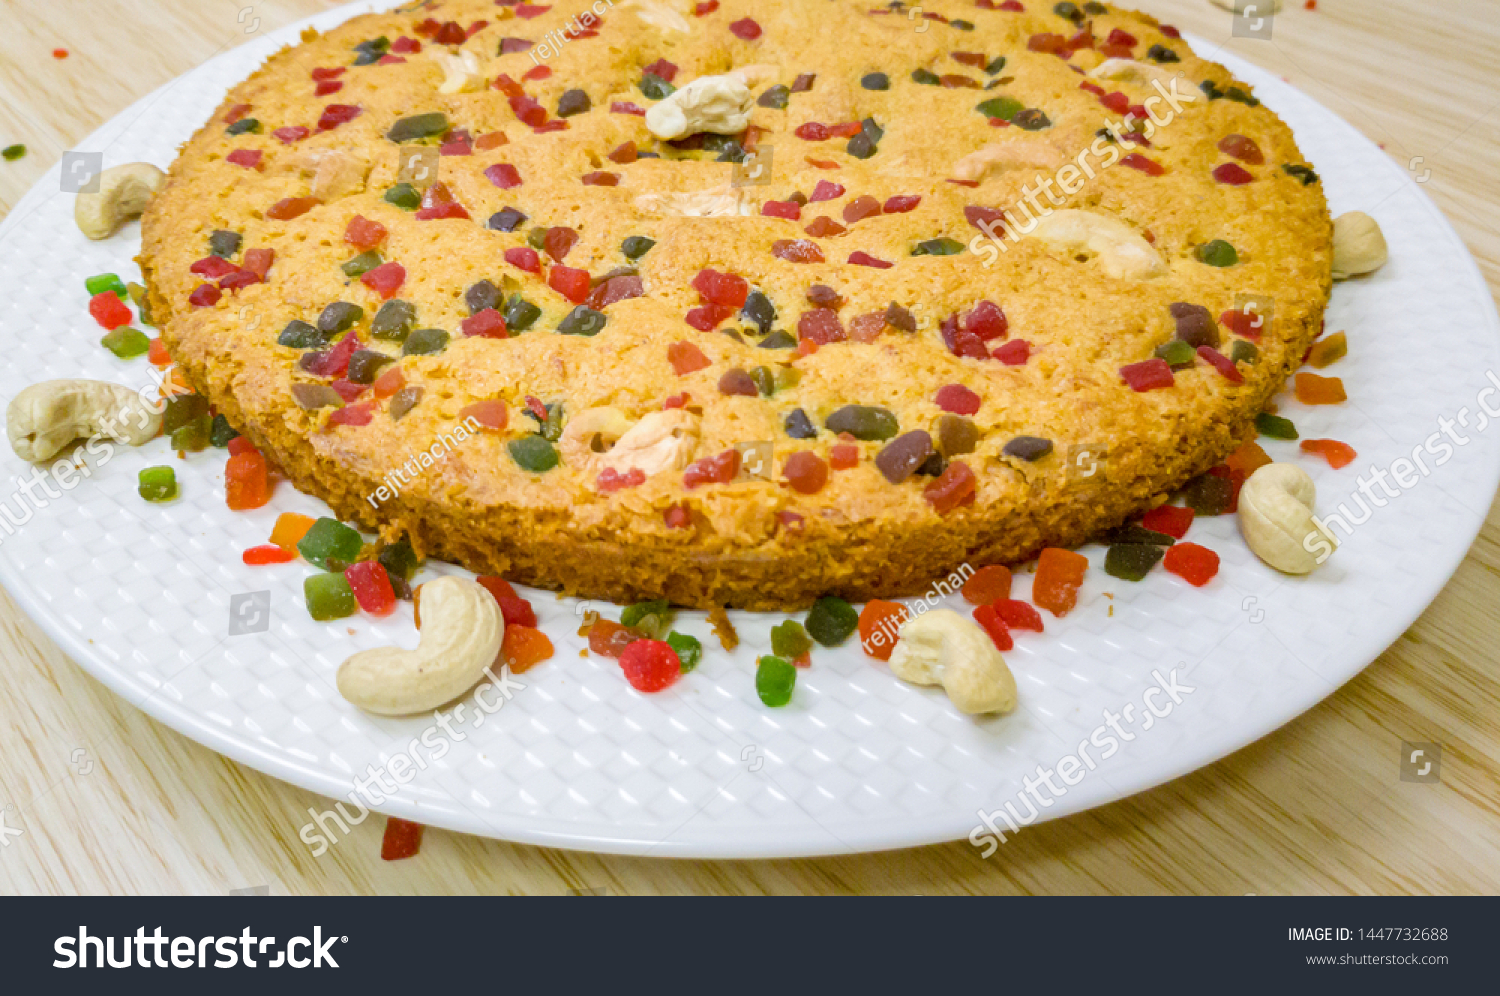 A perfectly baked carrot cake garnished with cashew and tutti frutti.